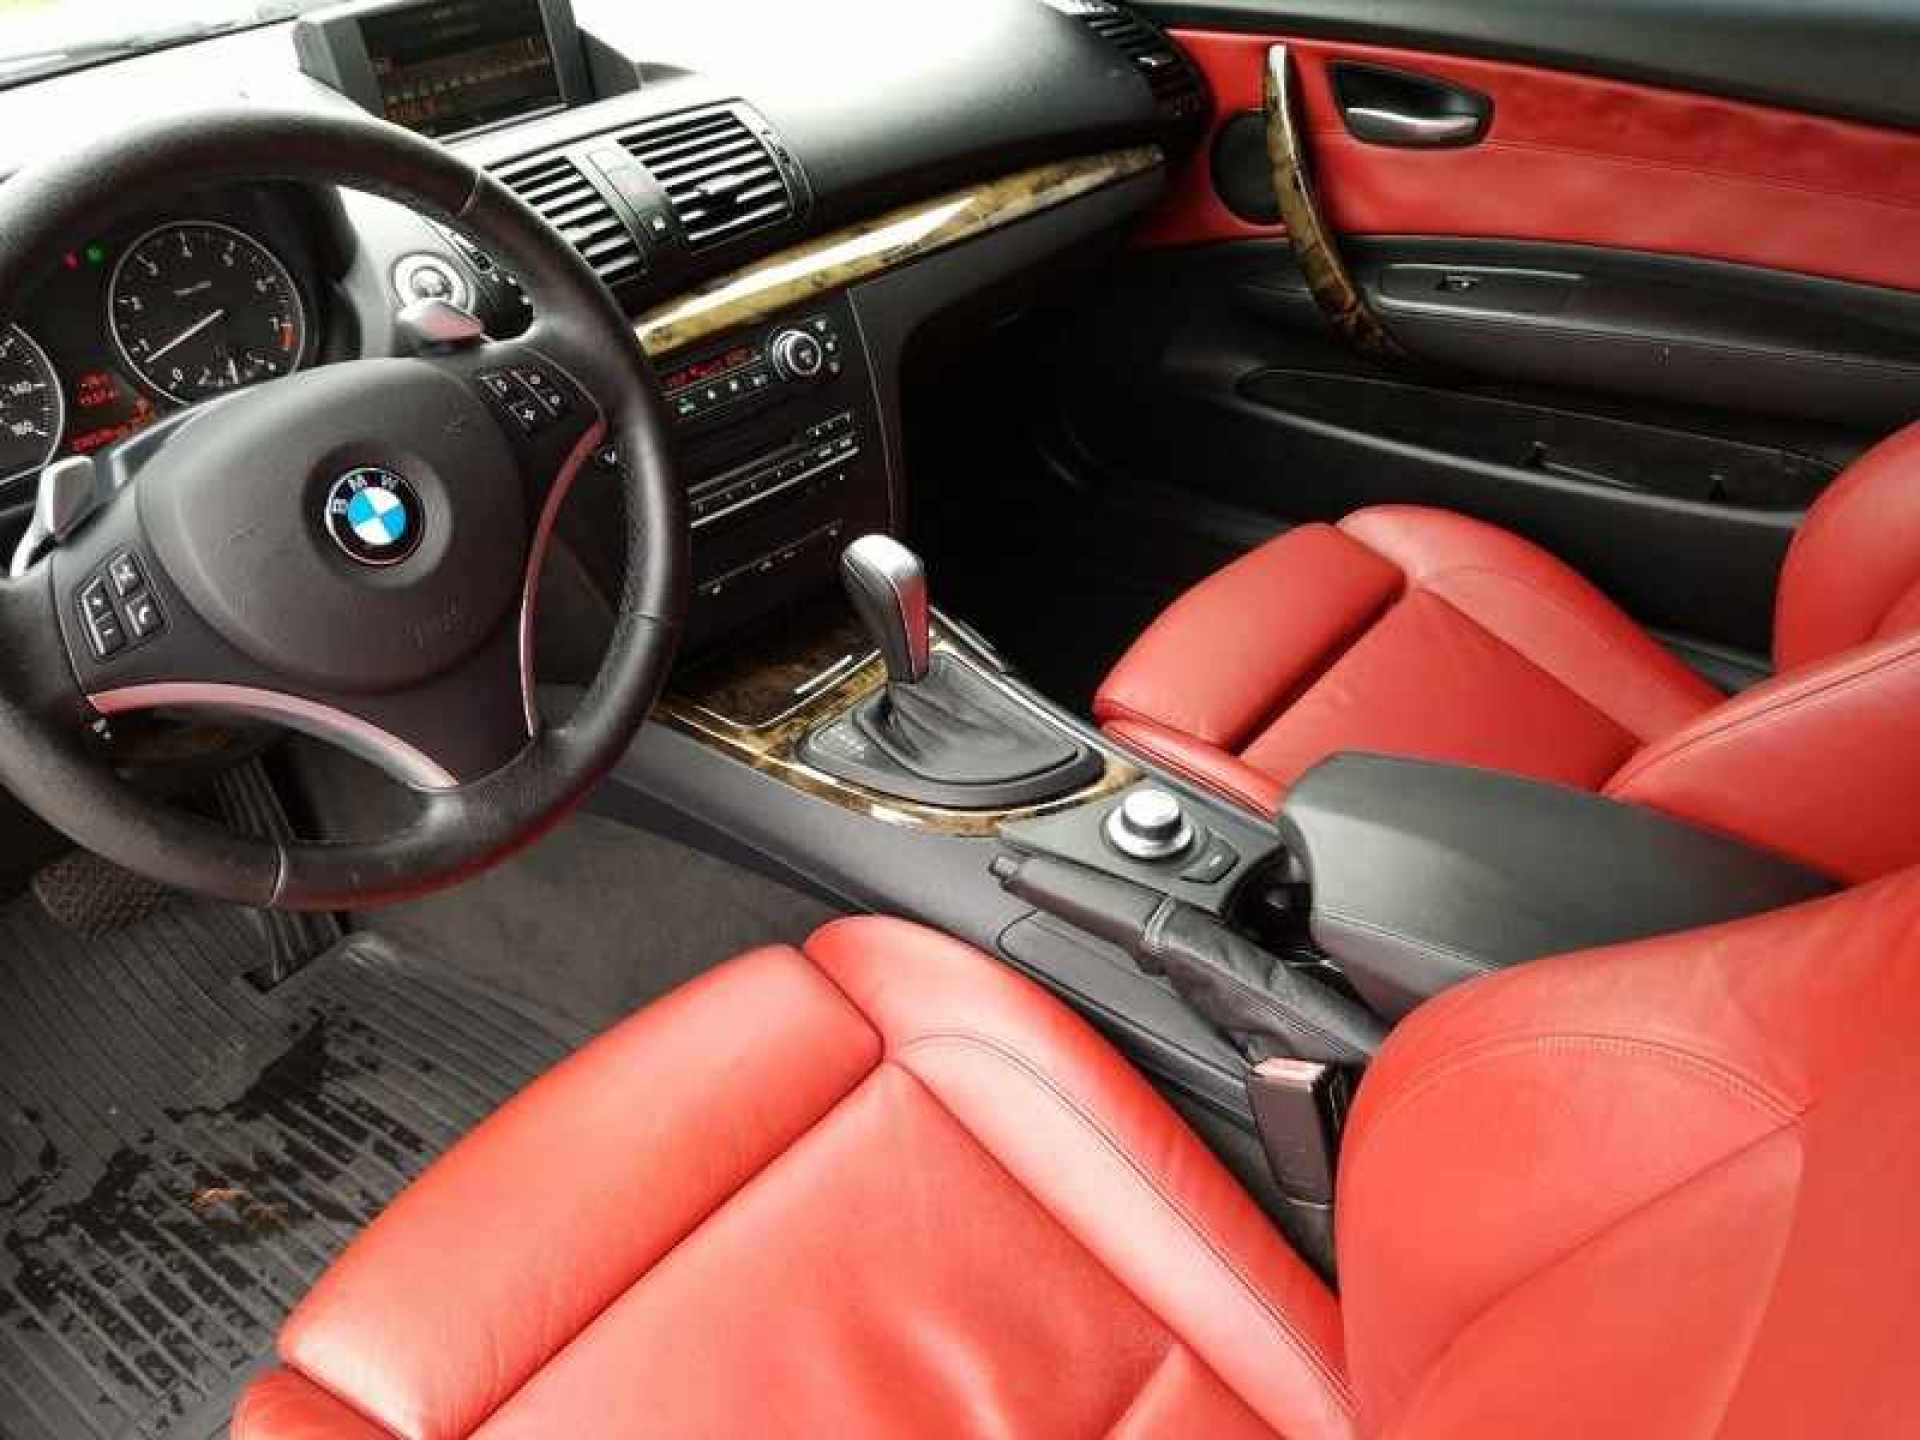 Buy 2008 Bmw 1 Series Convertible White Red Leather Looks Great Navi Sport Seats Nice For Sale In Sarasota Fl 7dayautos